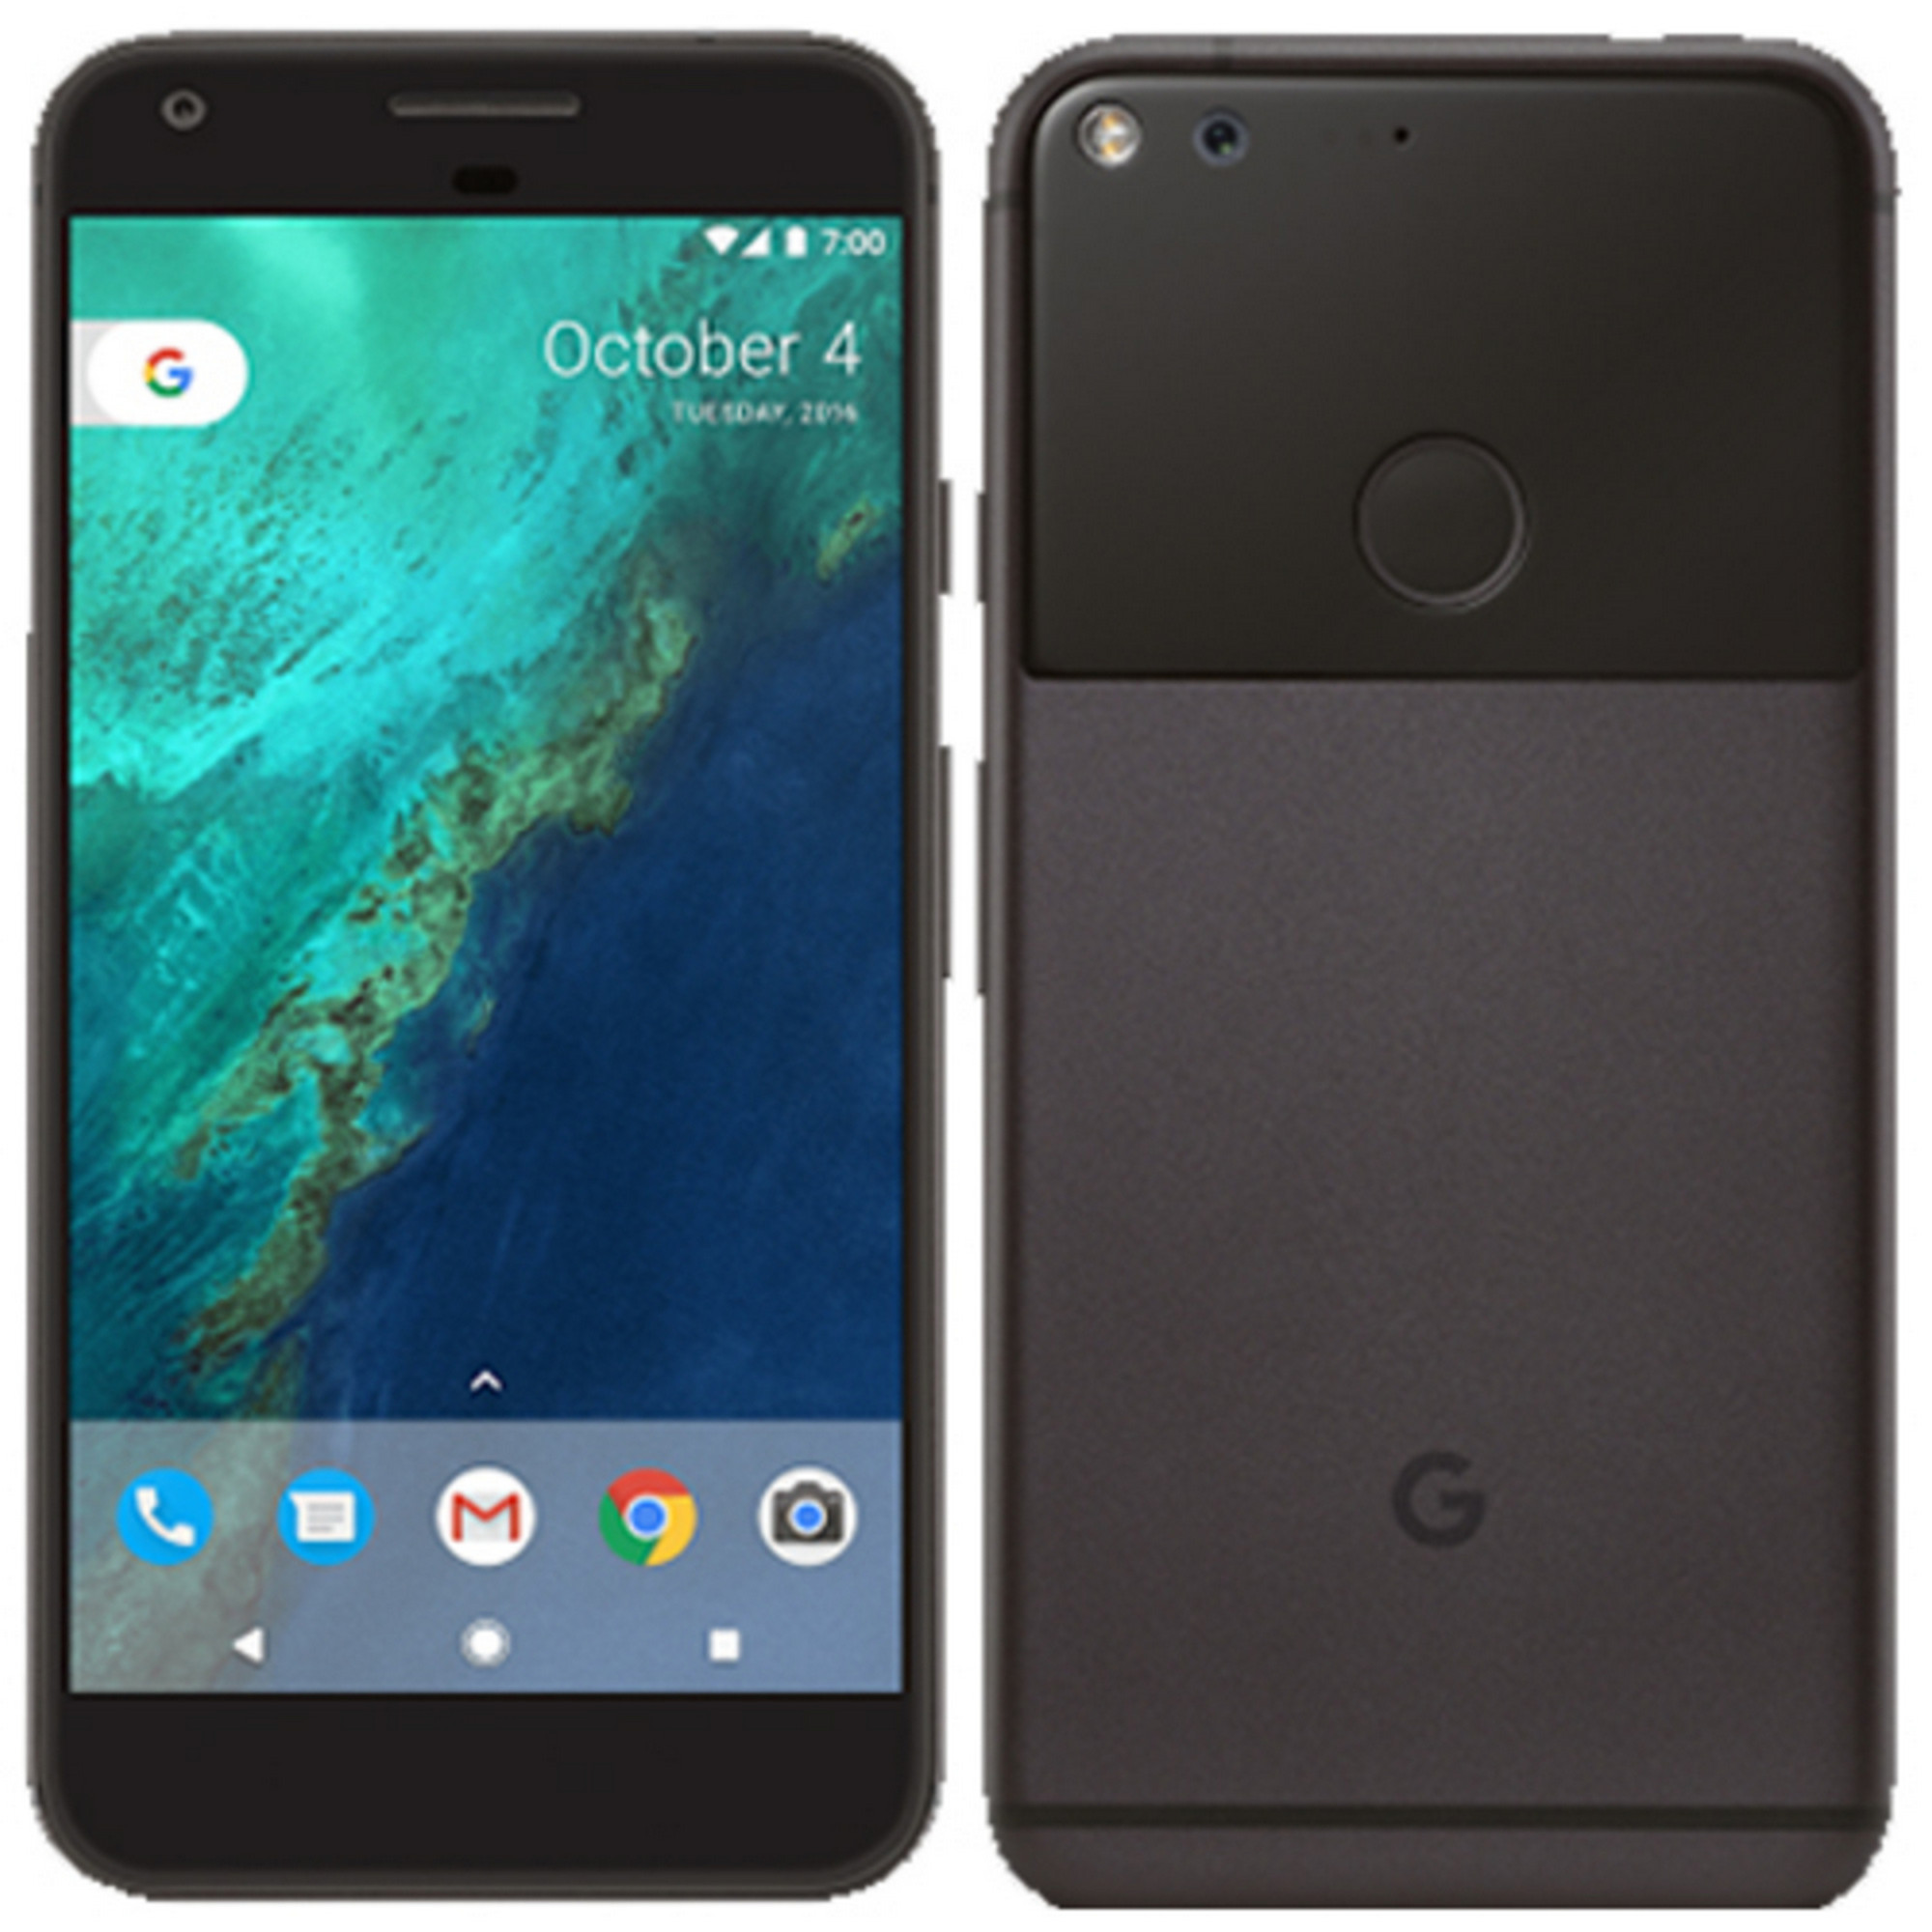 Google Pixel XL | Unlocked | Quite Black | 32GB | Used: Acceptable | 5.5"